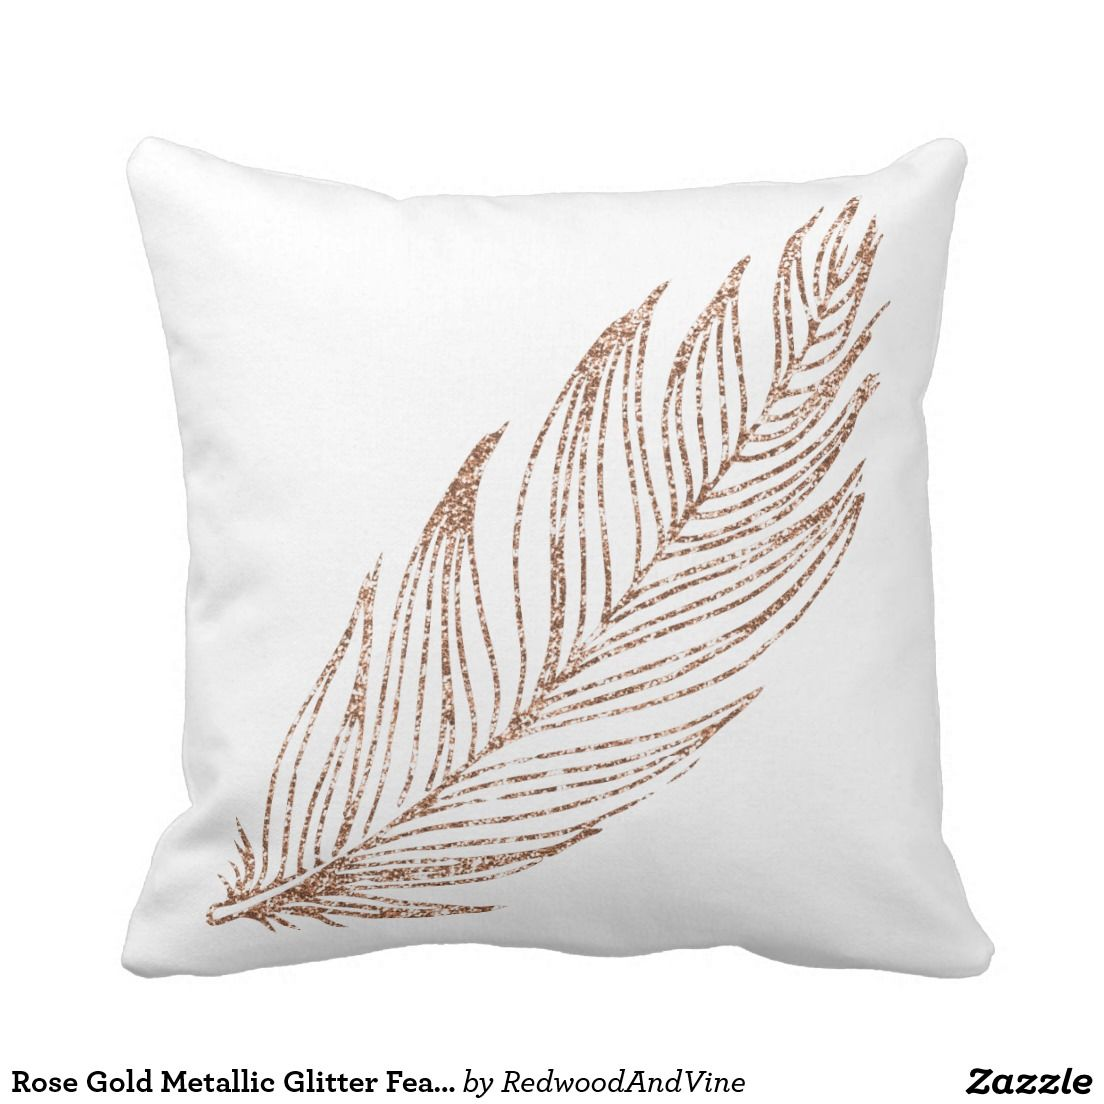 Rose Gold Faux Glitter Feather Throw Pillow Zazzle Com Rose Gold Throw Pillows Rose Gold Pillow Rose Gold Bedroom